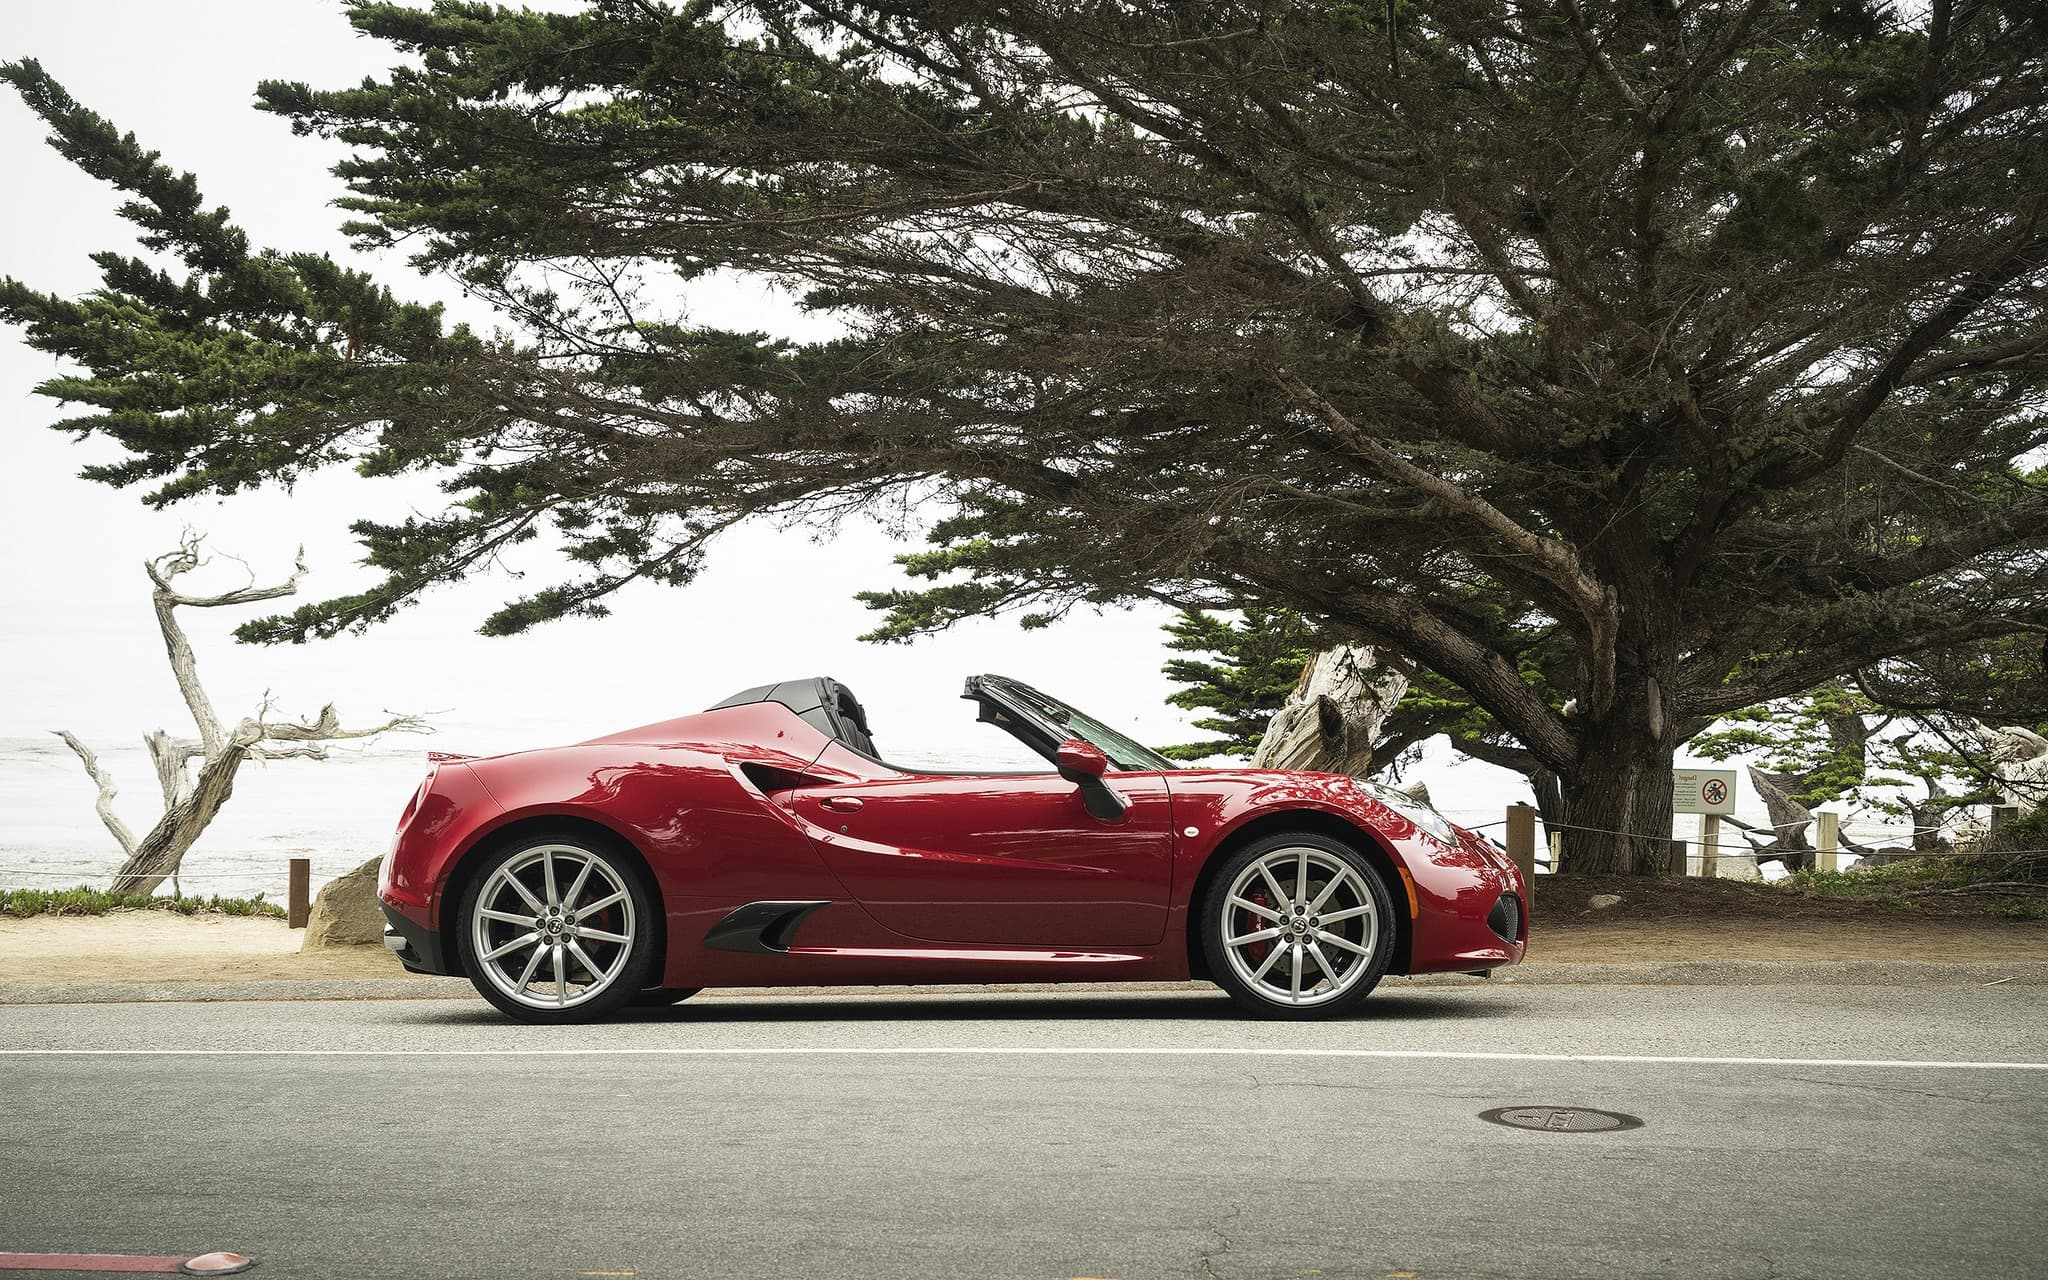 2016 Alfa Romeo 4C Spider wallpapers HD High Resolution ...